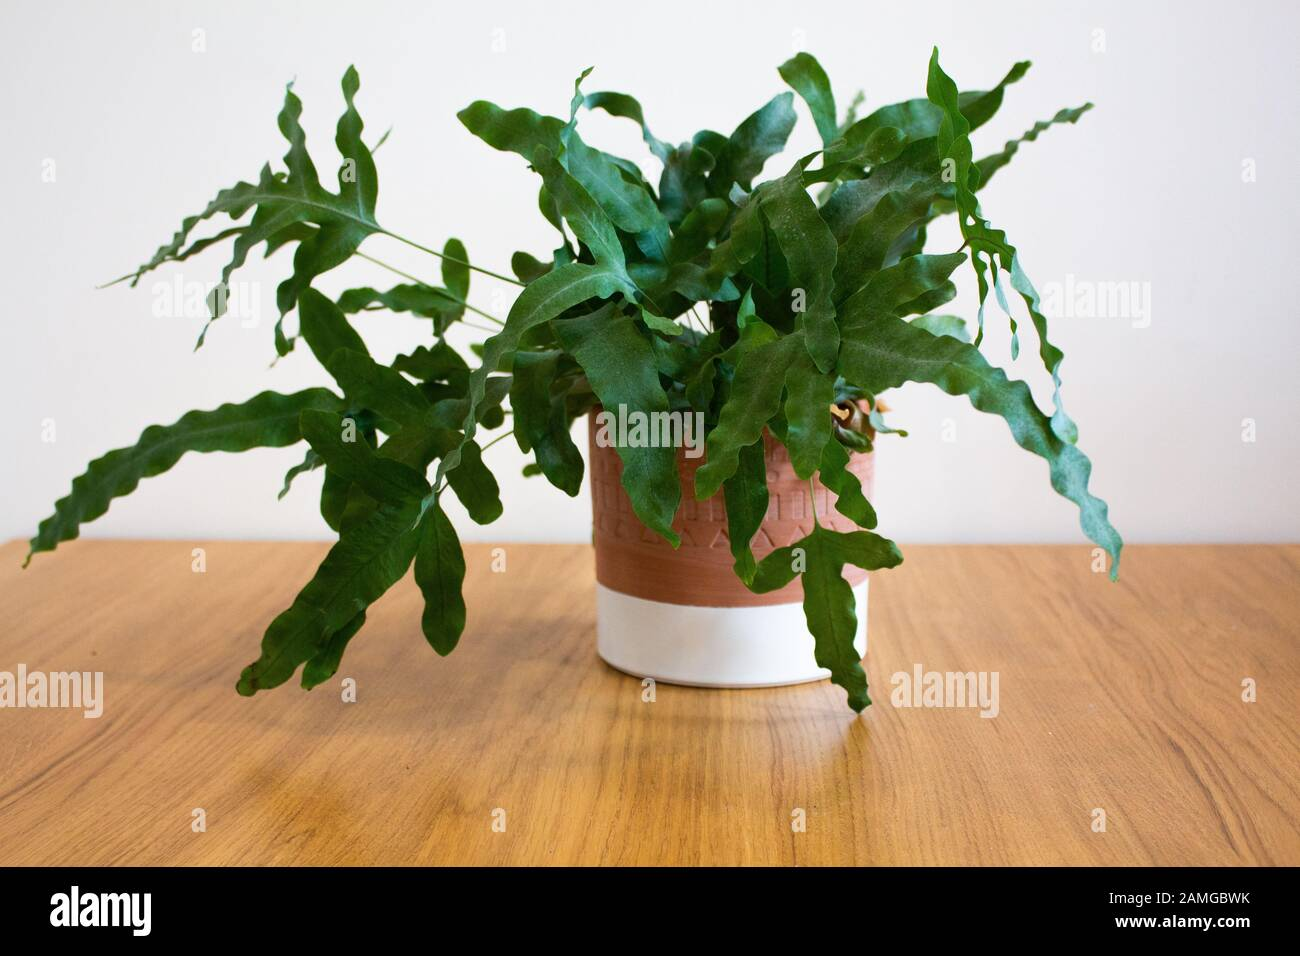 Blue Star fern plant in decorative pot against white background Stock Photo